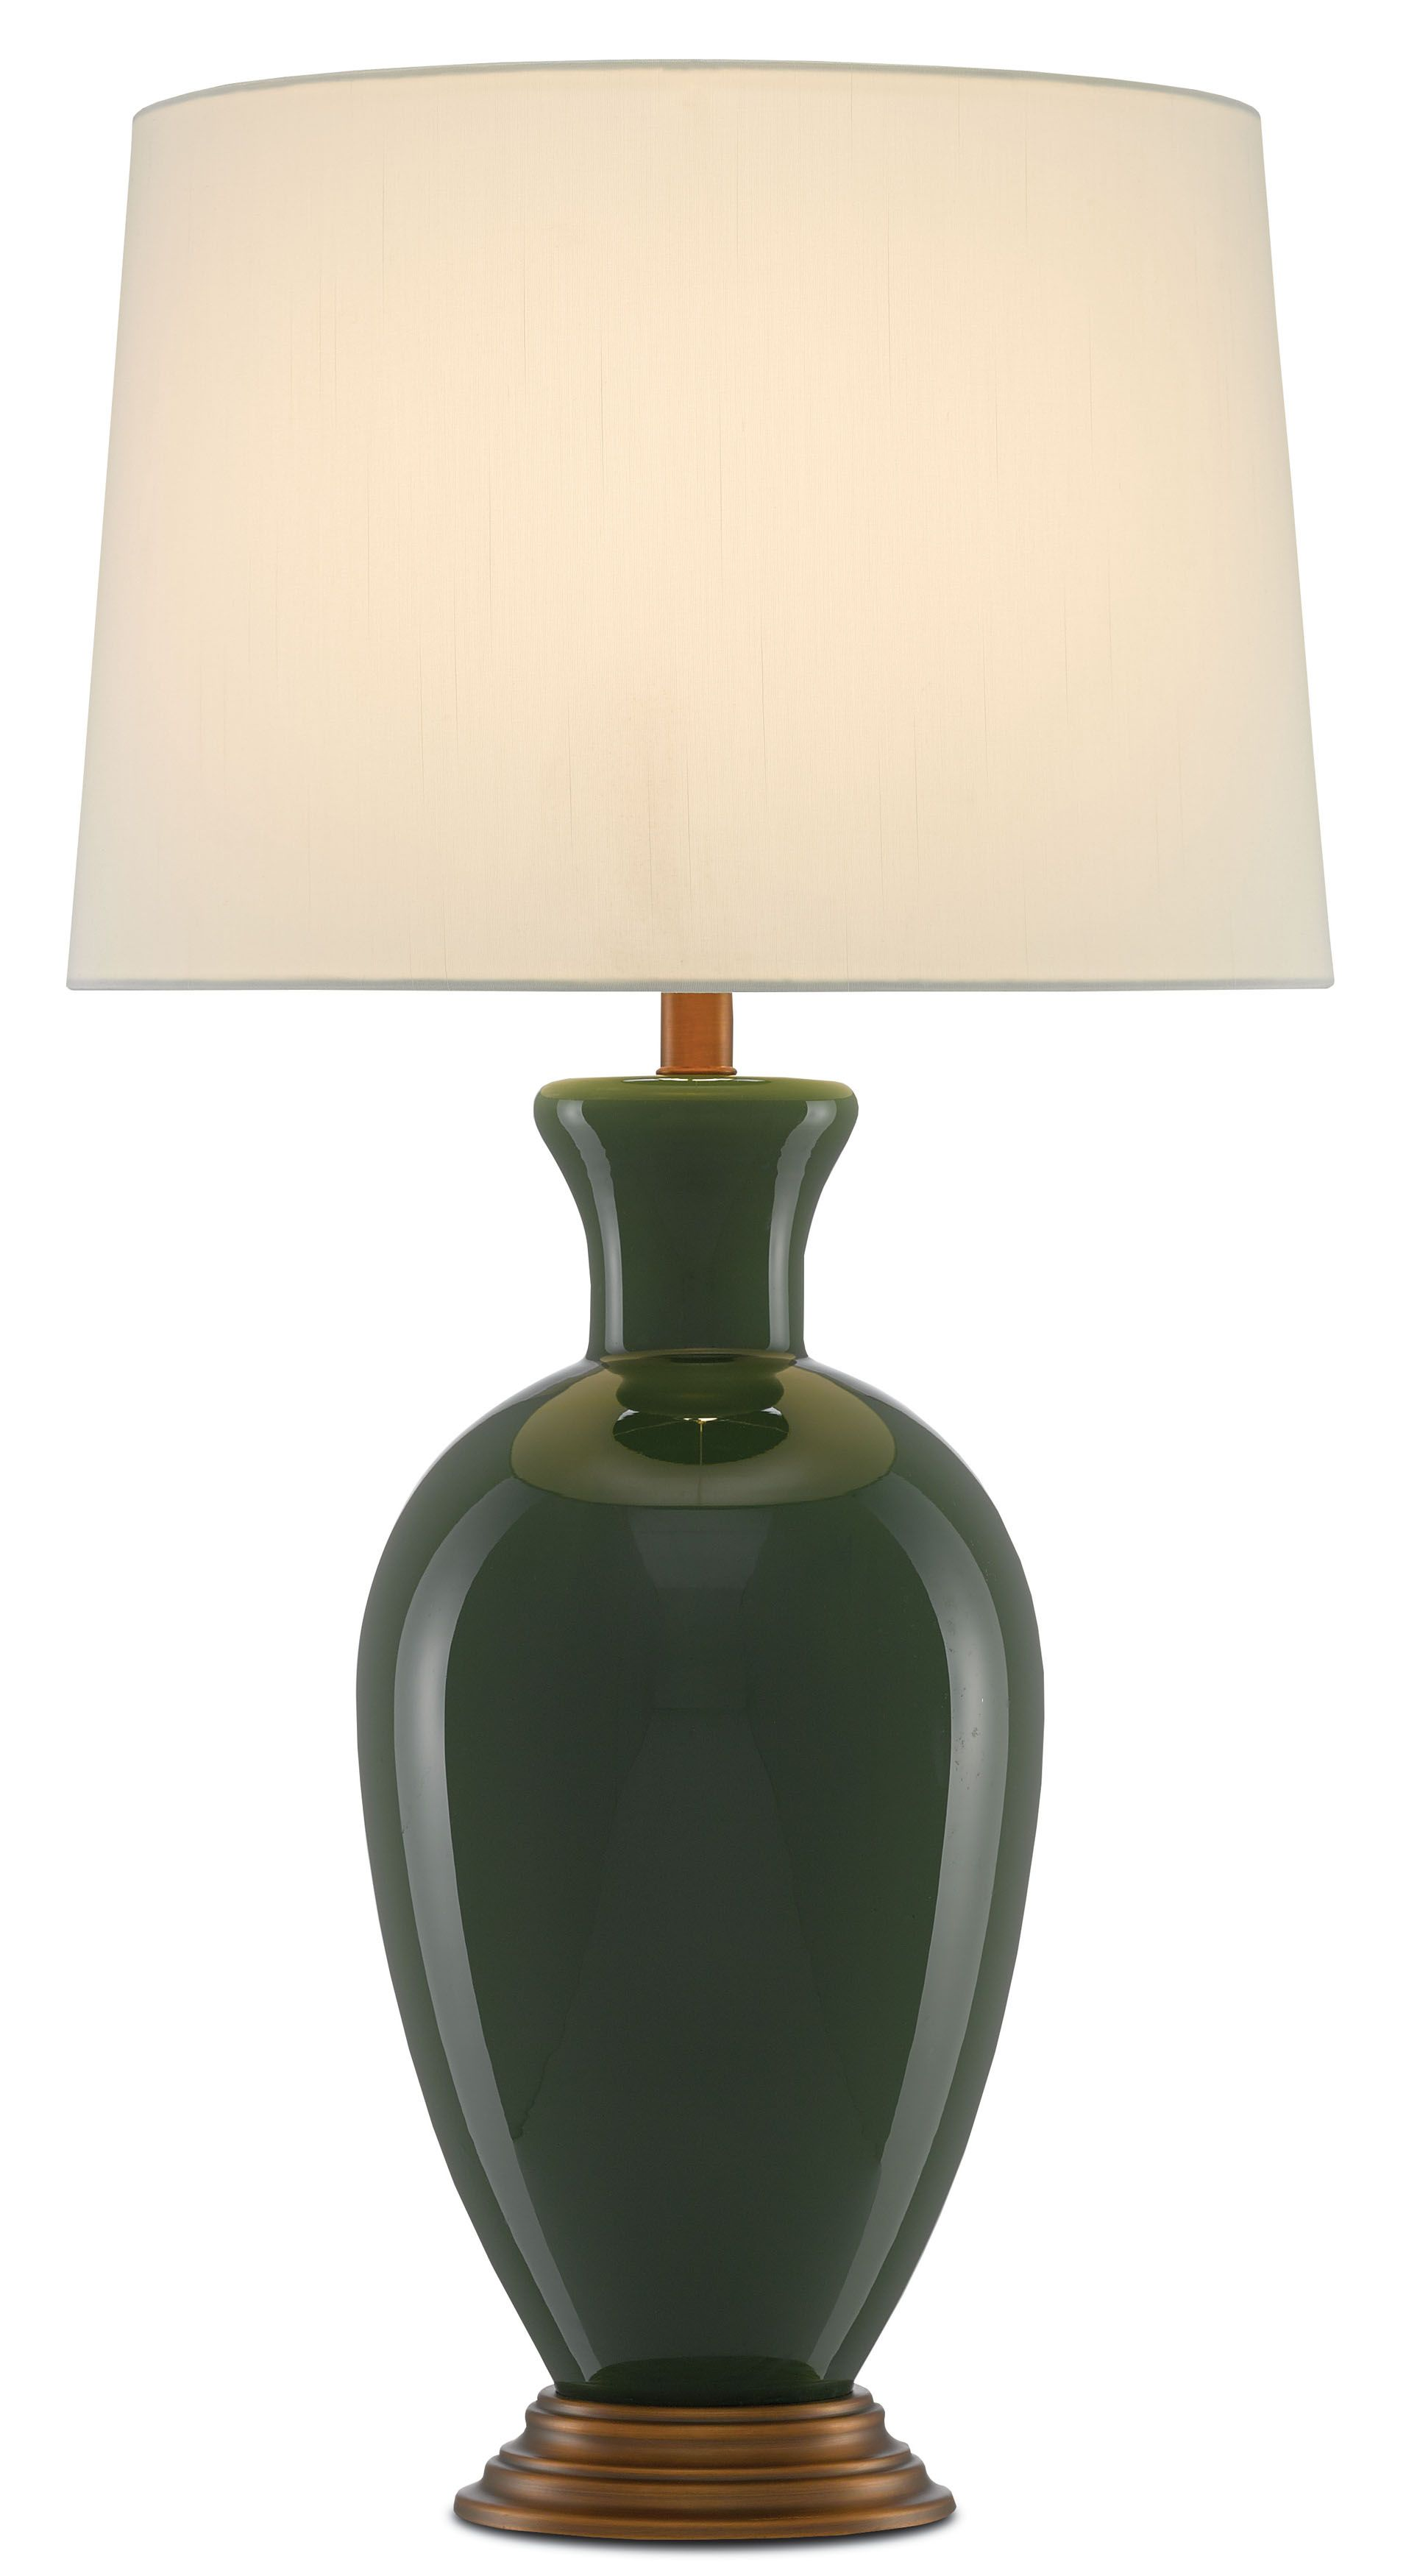 The Green Cybil Table Lamp Earns Its Respect As A Sleek Echo Of Historical Designs The Urn Shaped Body Of The Lamp Made O Lamp Table Lamp Colorful Table Lamp